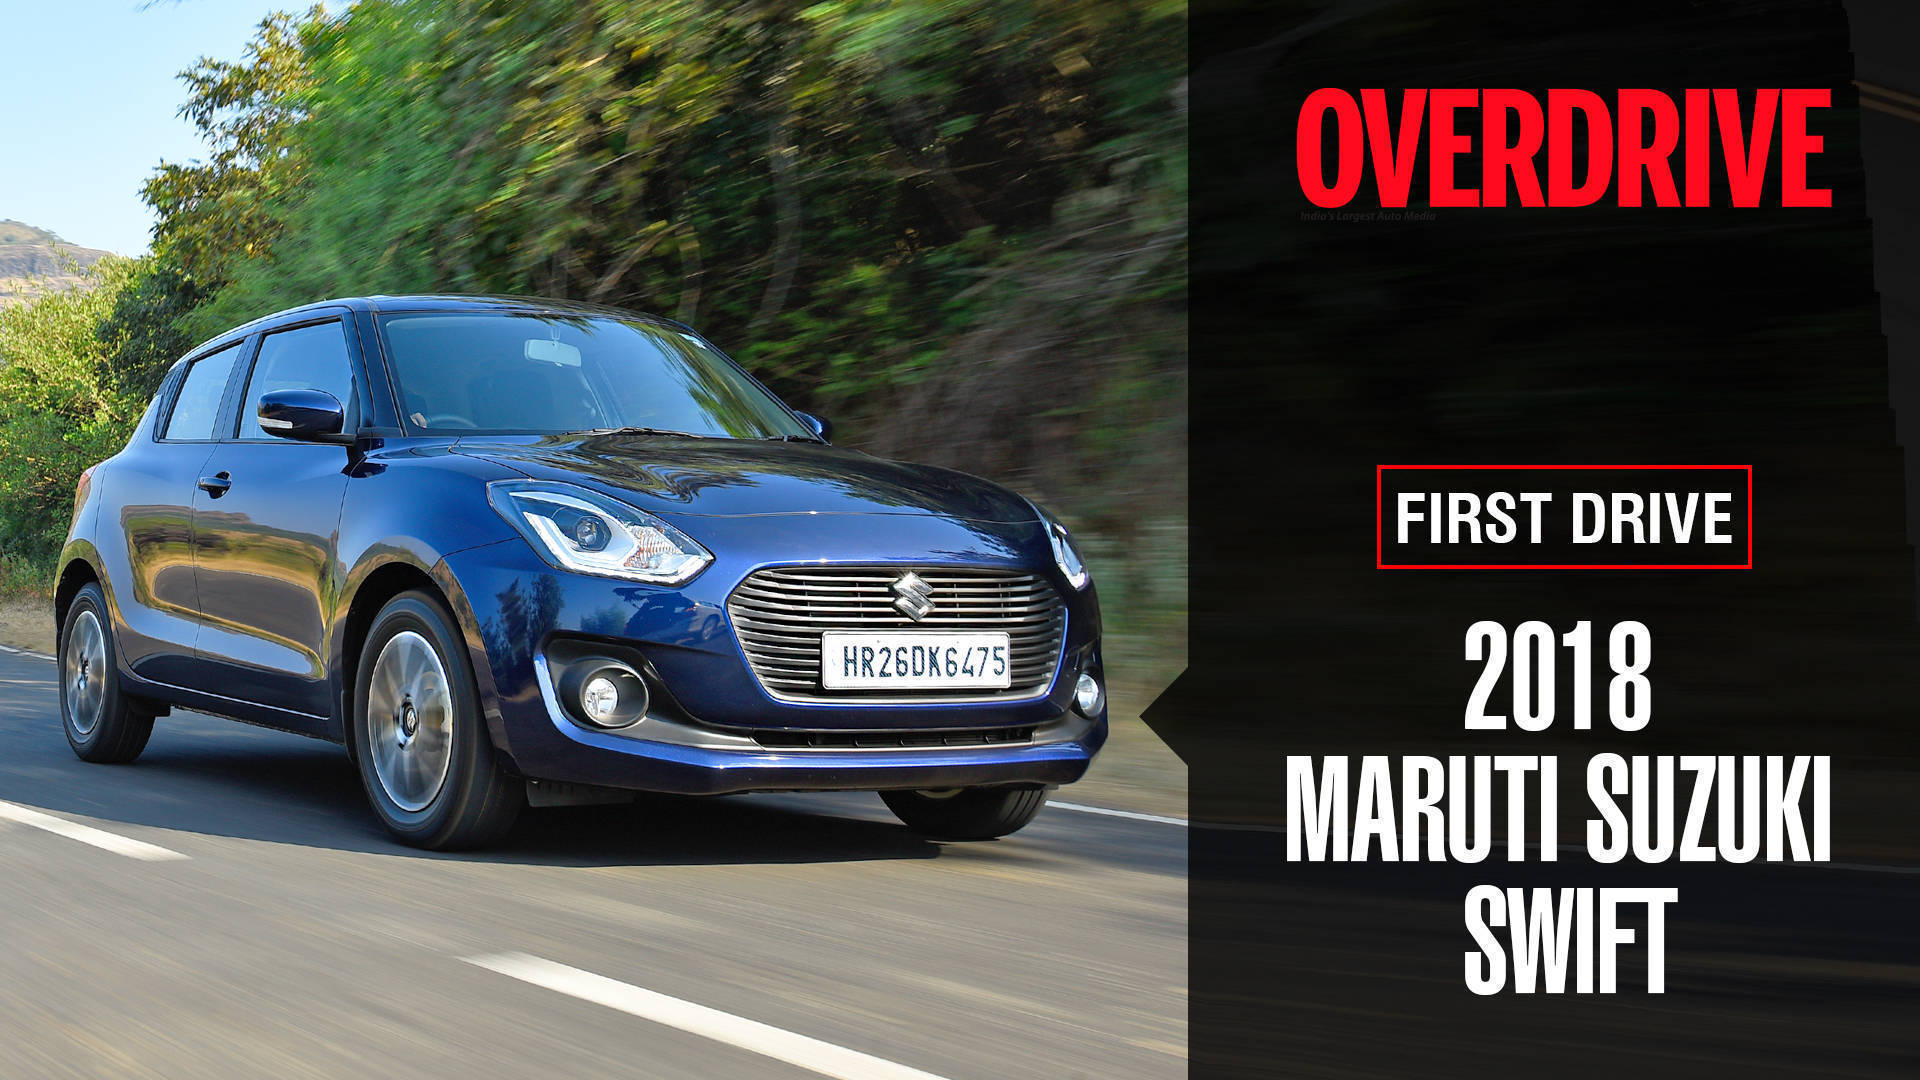 2018 Maruti Suzuki Swift | First Drive Review